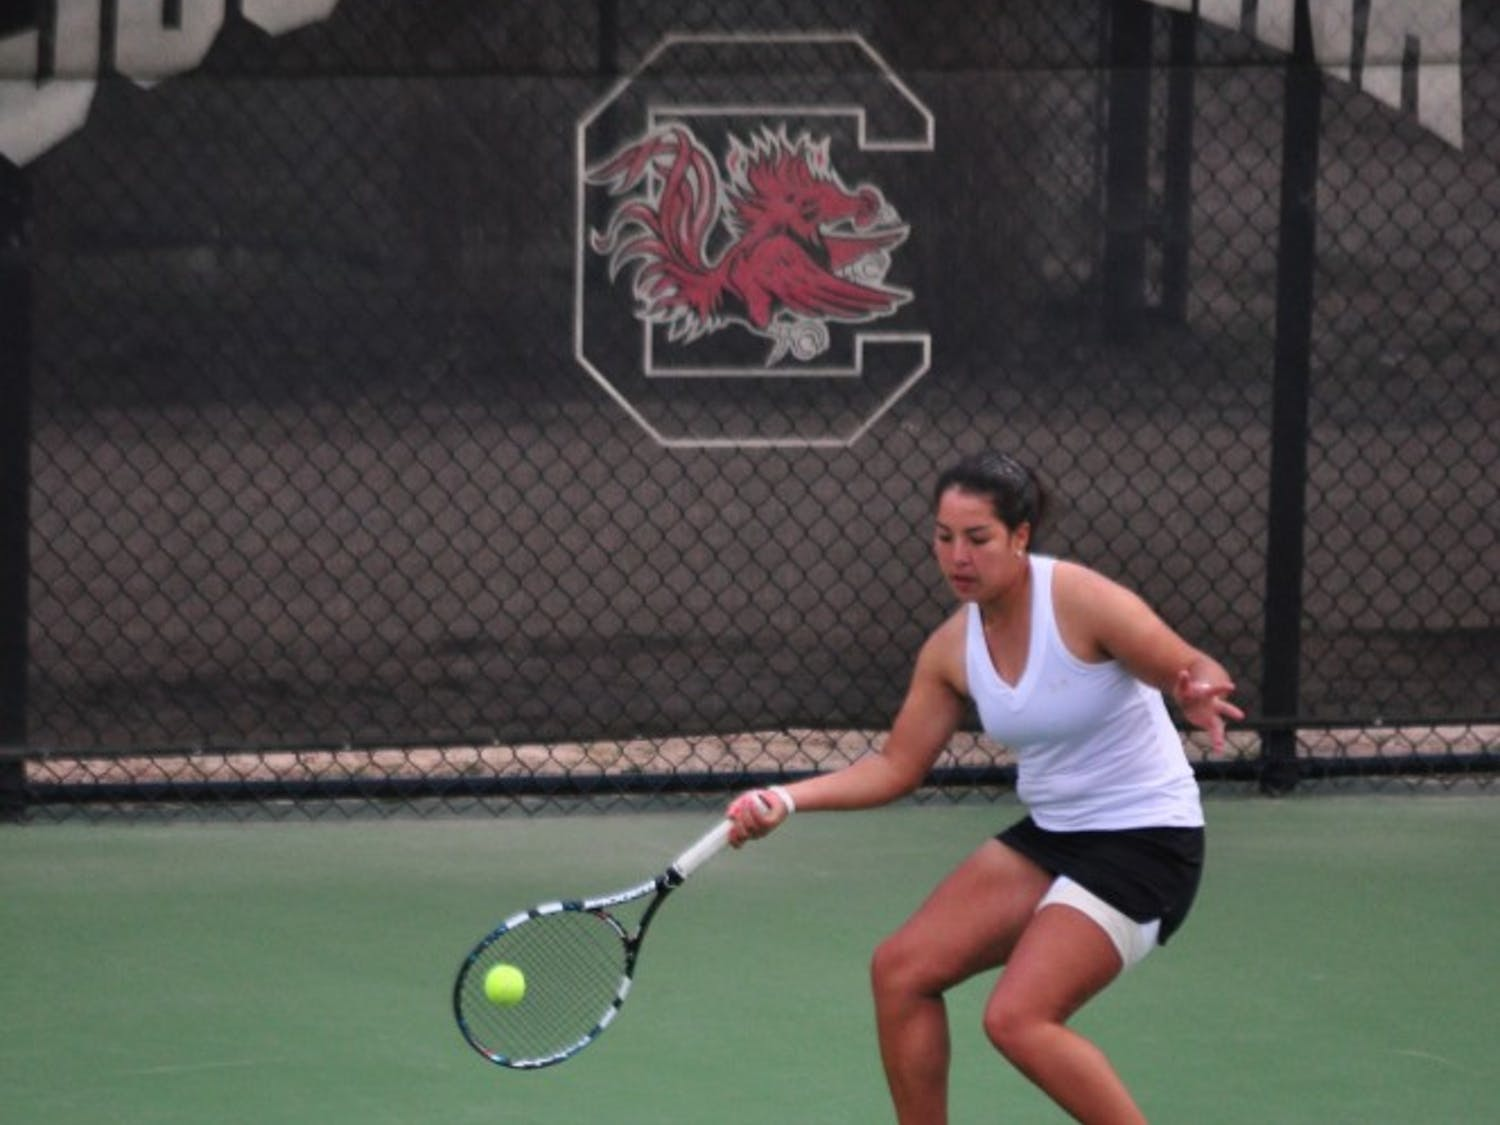 Freshman Ximena Siles Luna won her match at No. 5 singles against Ole Miss.